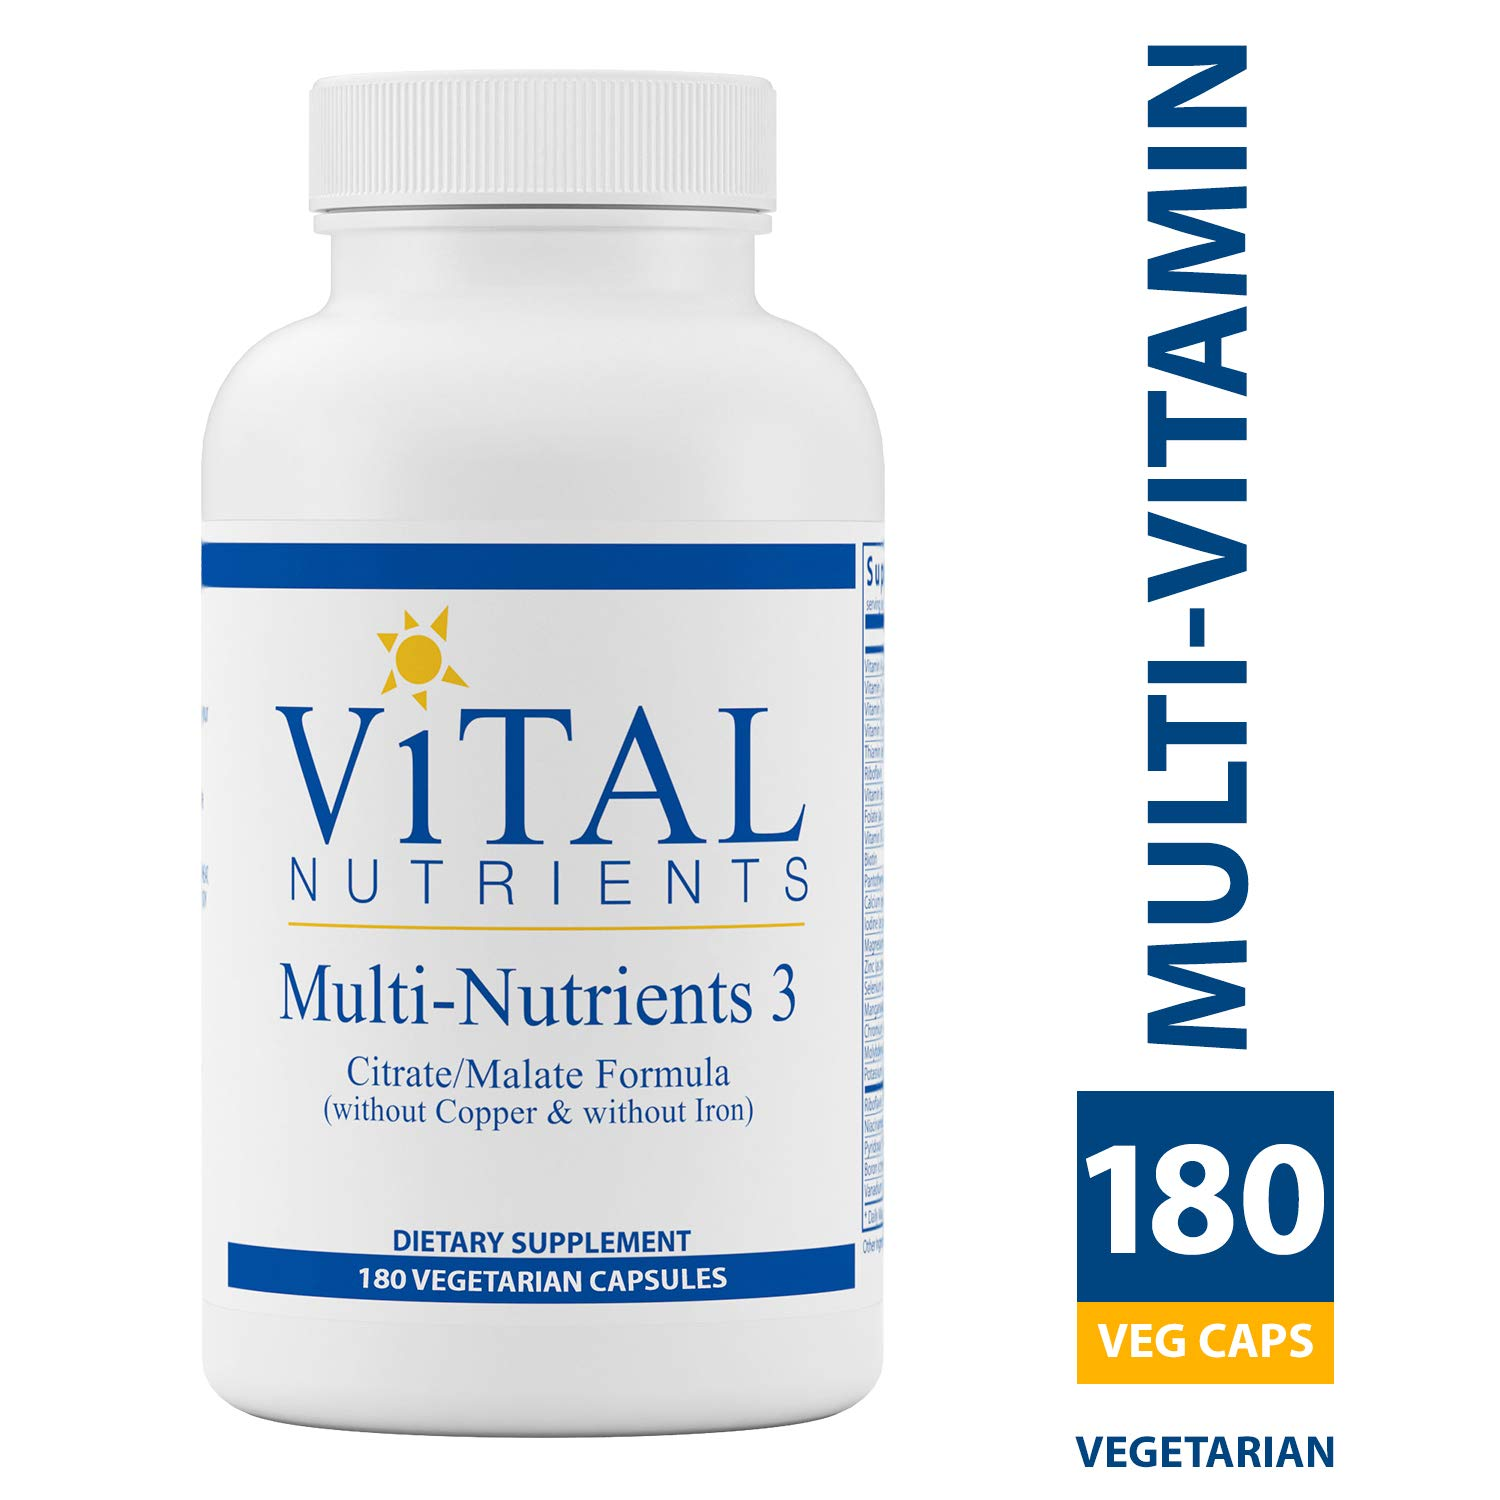 Vital Nutrients – Multi-Nutrients 3 – Citrate Malate Formula Without Copper or Iron – Multi-Vitamin Mineral with Potent Antioxidants – Gentle Bioavailable Form – 180 Vegetarian Capsules per Bottle